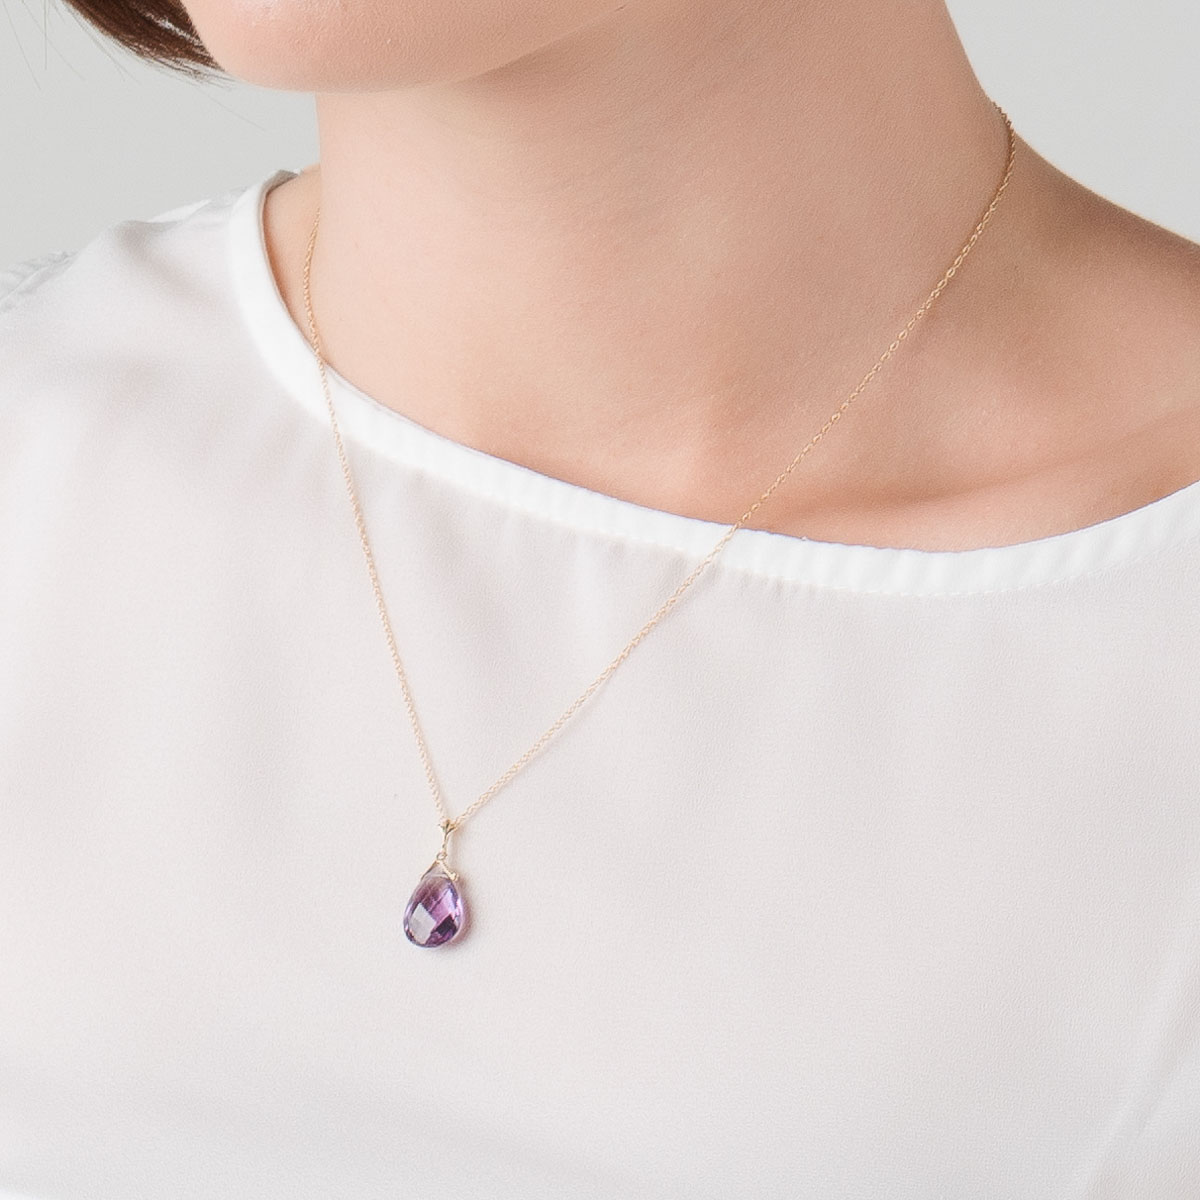 Amethyst Droplet Pendant Necklace 5.1 ct in 9ct Gold